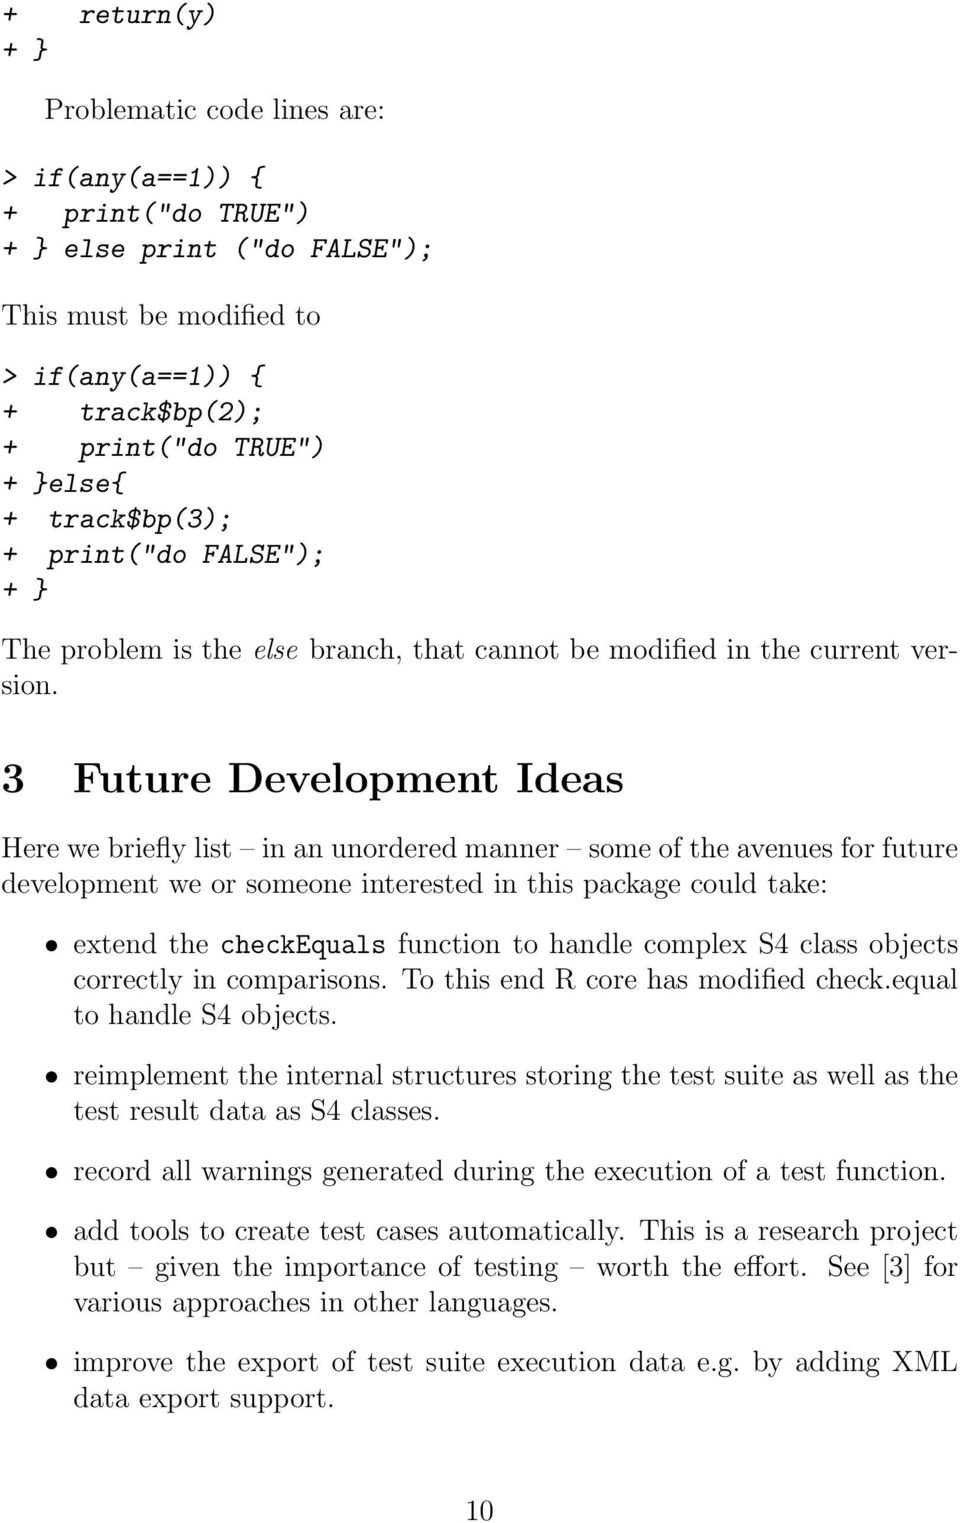 3 Future Development Ideas Here we briefly list in an unordered manner some of the avenues for future development we or someone interested in this package could take: extend the checkequals function